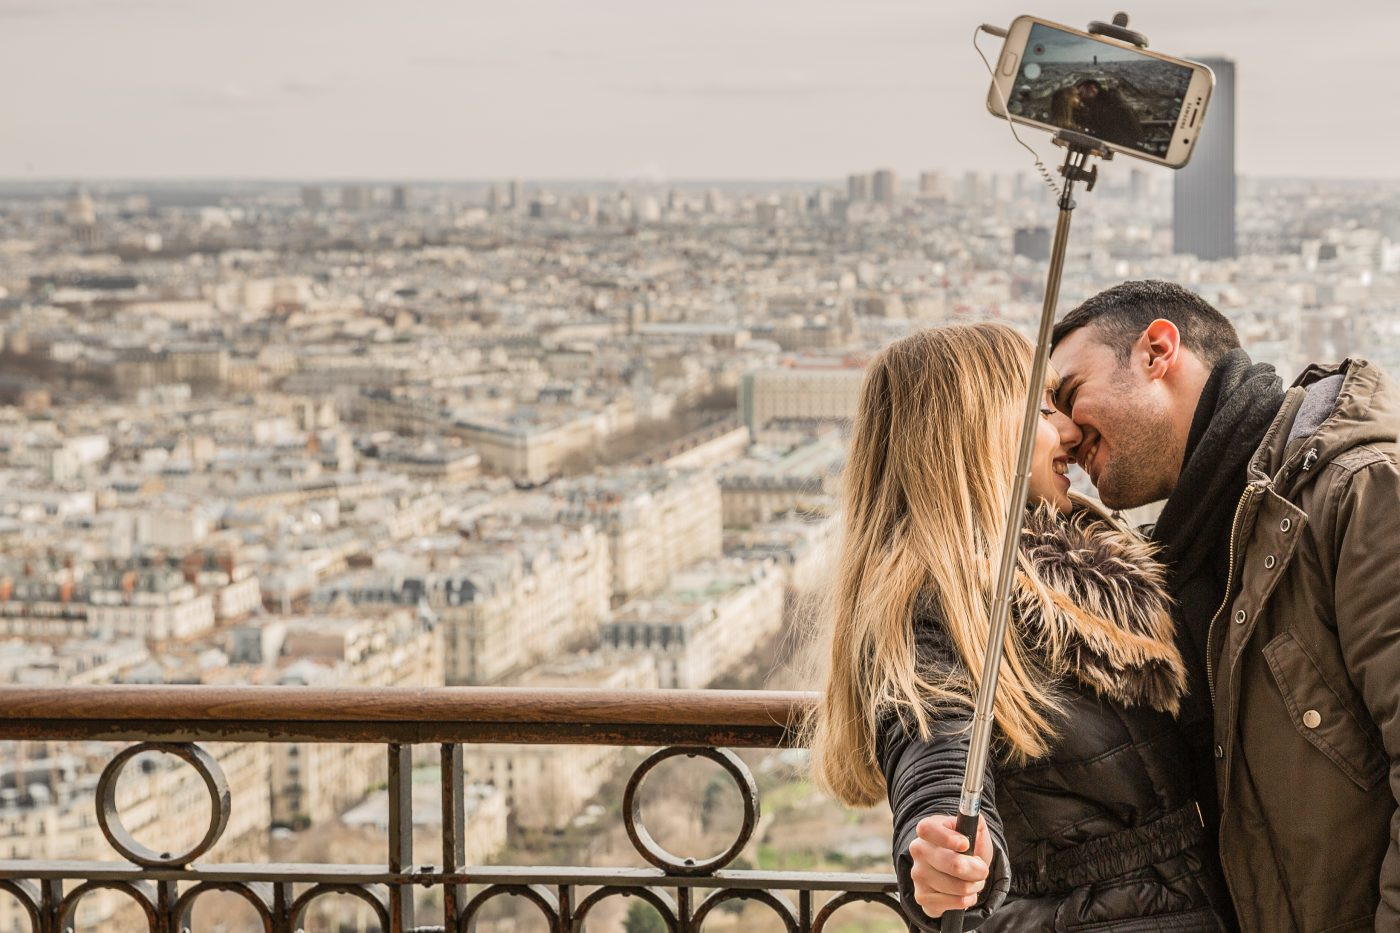 Couples Vacation: couple sightseeing in the city